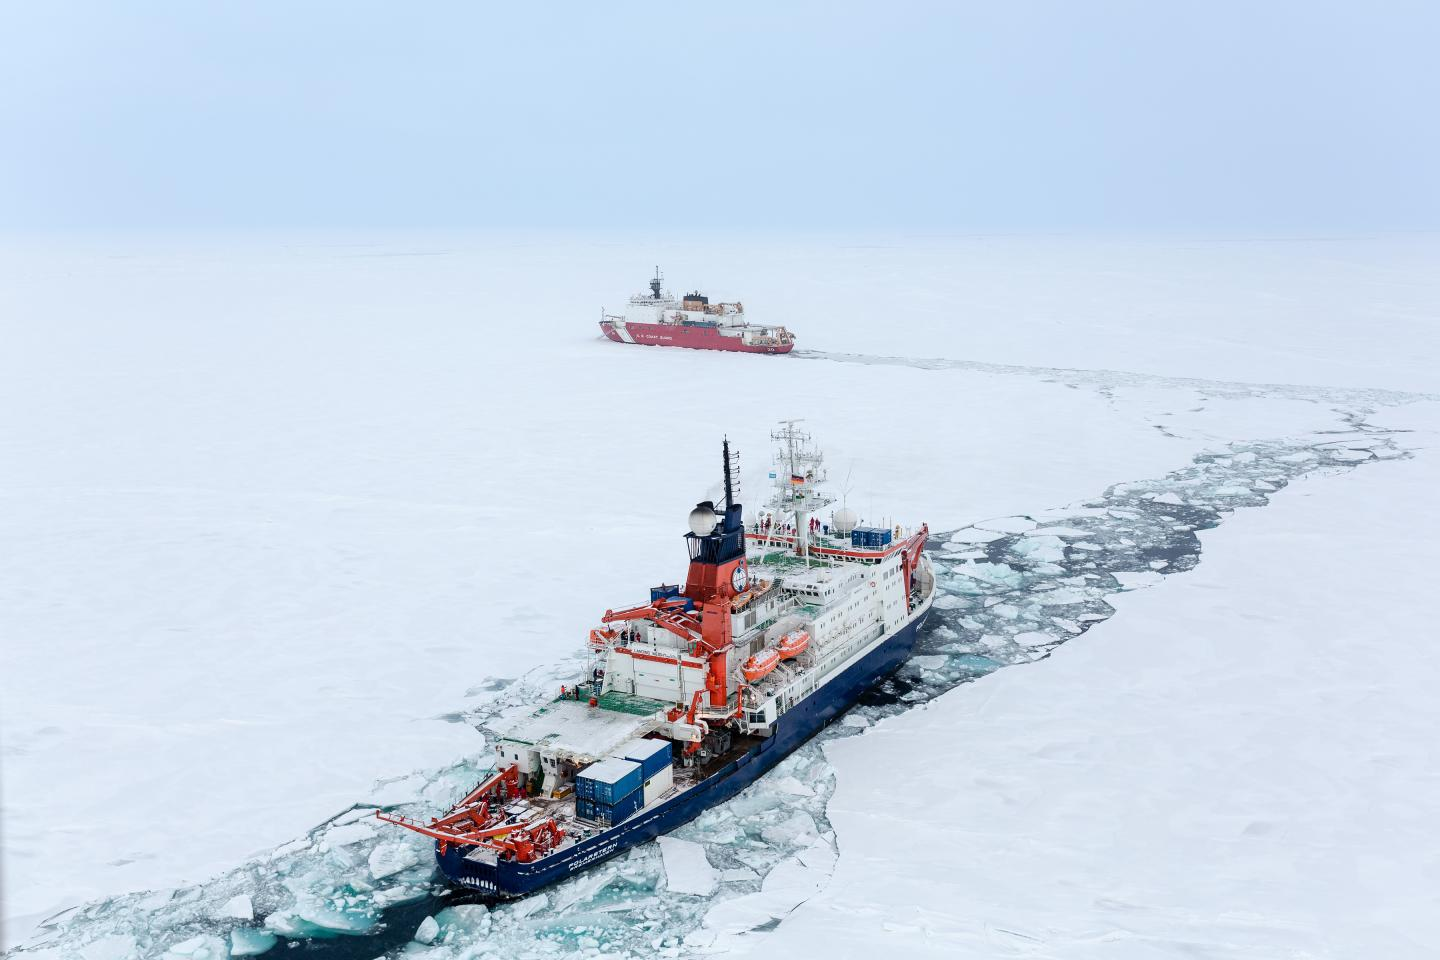 Materials from Arctic Shelves are Changing the Water's Composition